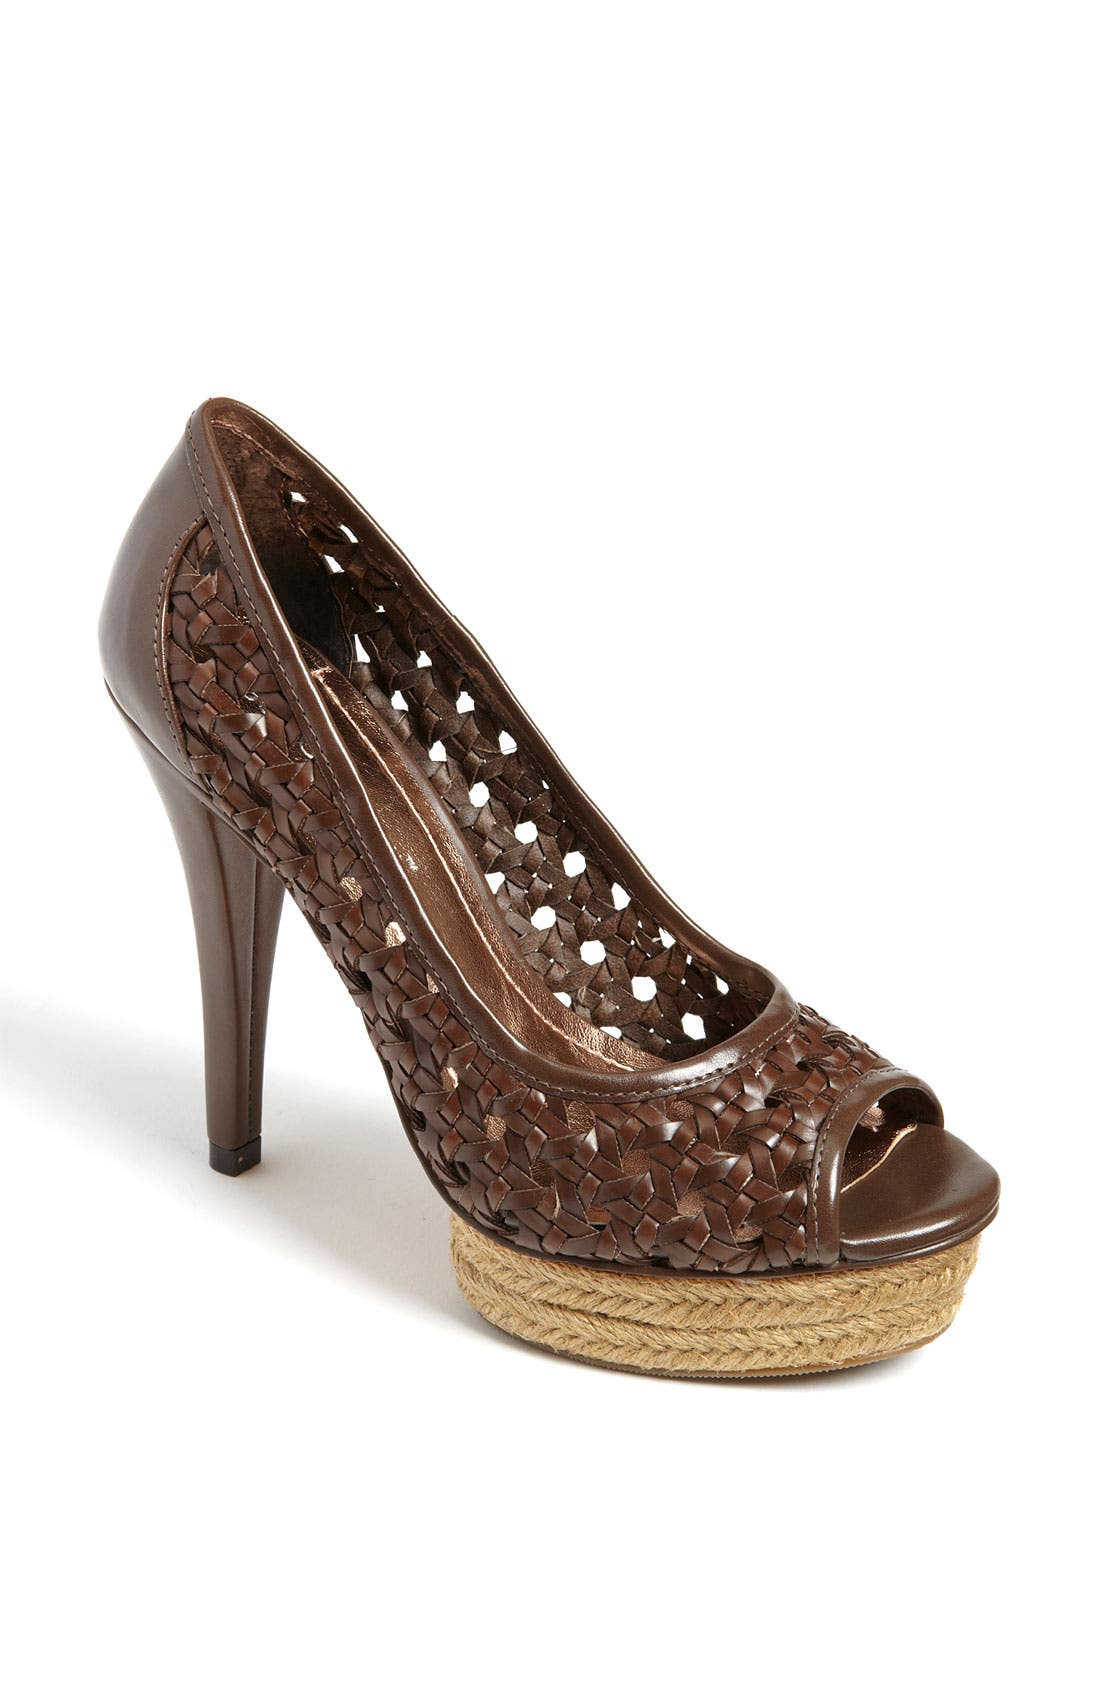 Alternate Image 1 Selected - BCBGeneration 'Orlando' Pump